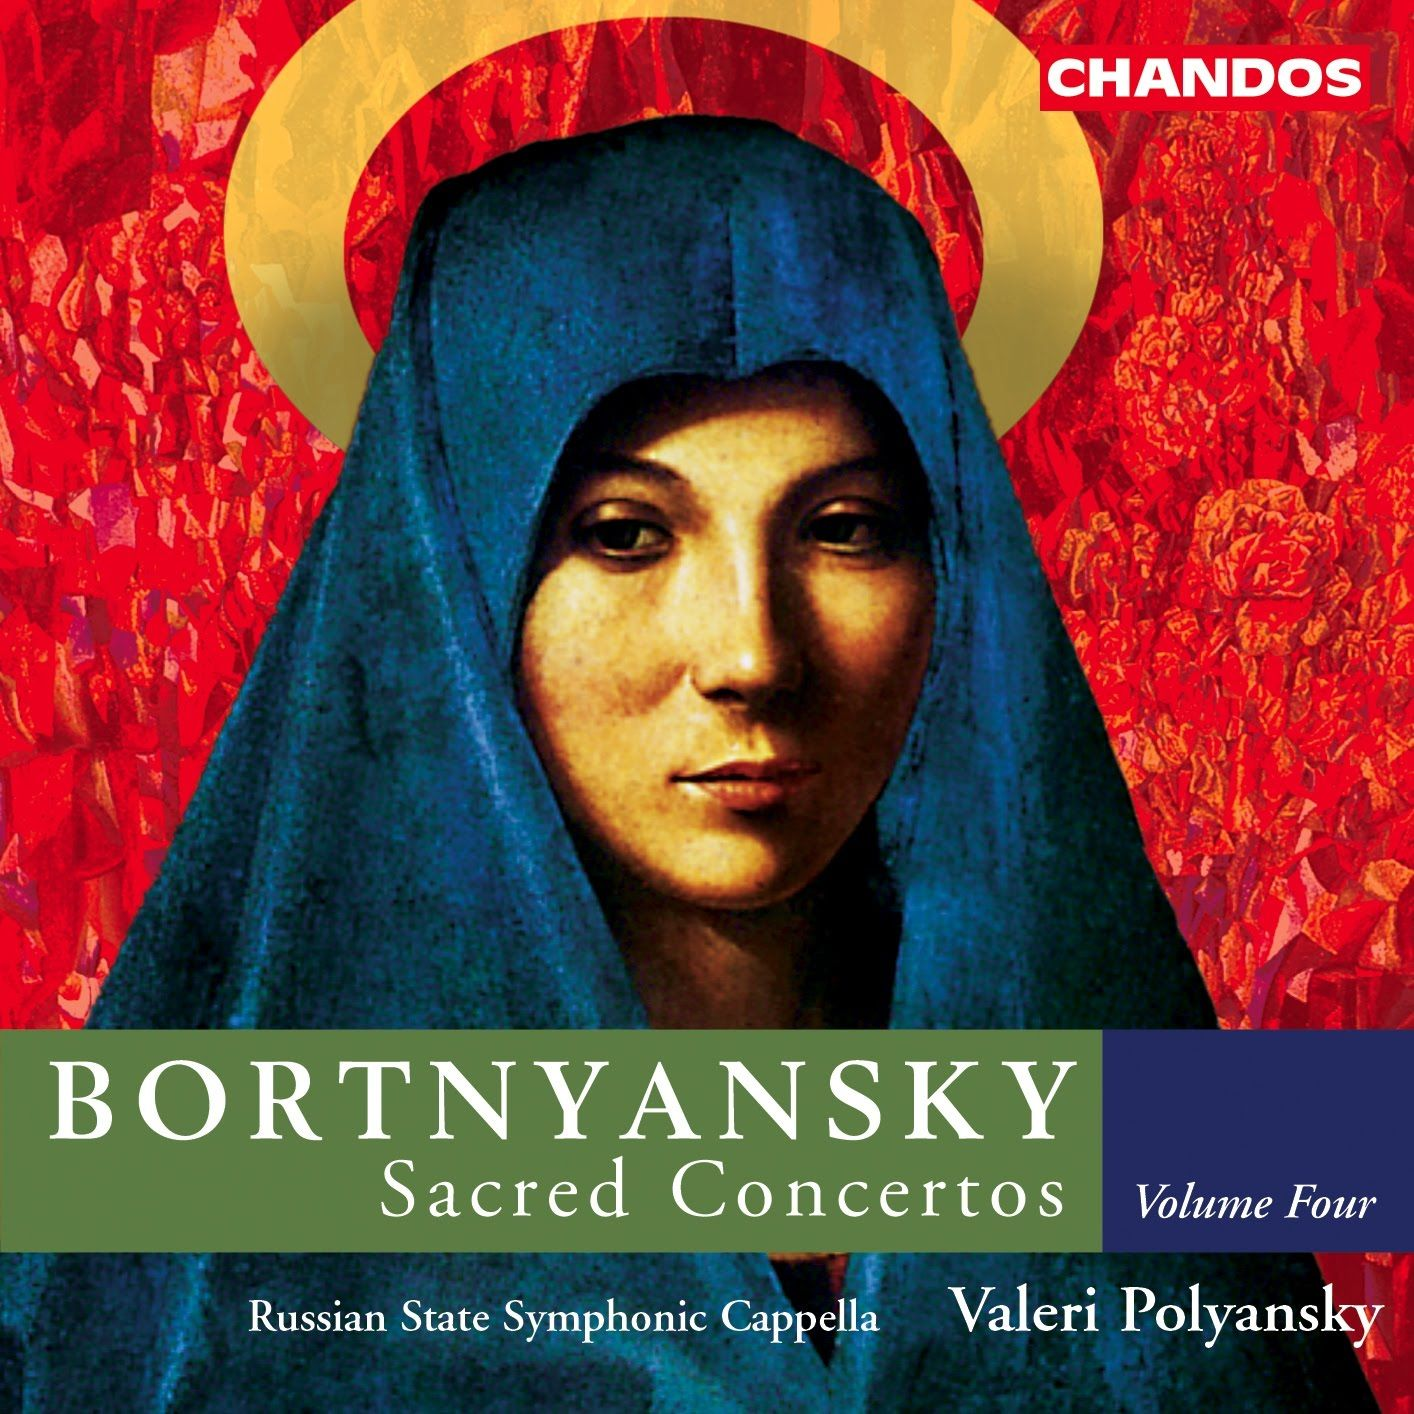 Bortnyansky Sacred Concertos Weekend Playlist Dmitry